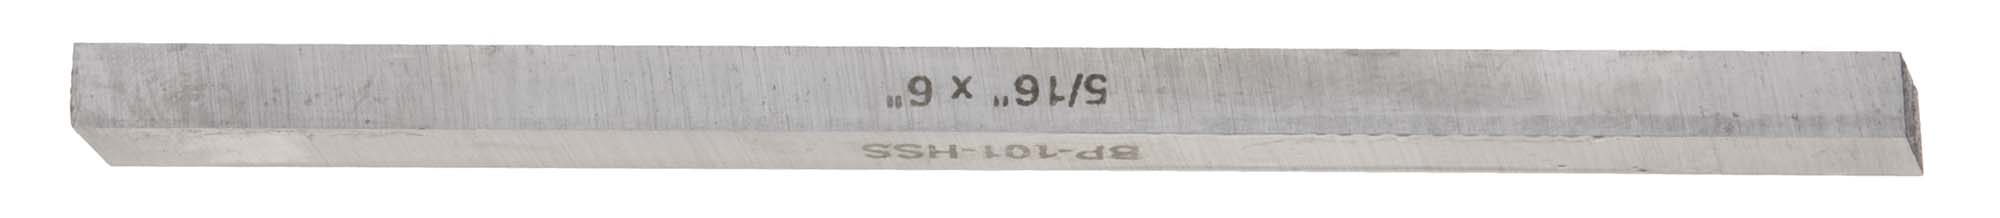 "5/16"" Square X 6"" Long High Speed Steel M2 Tool Bit"